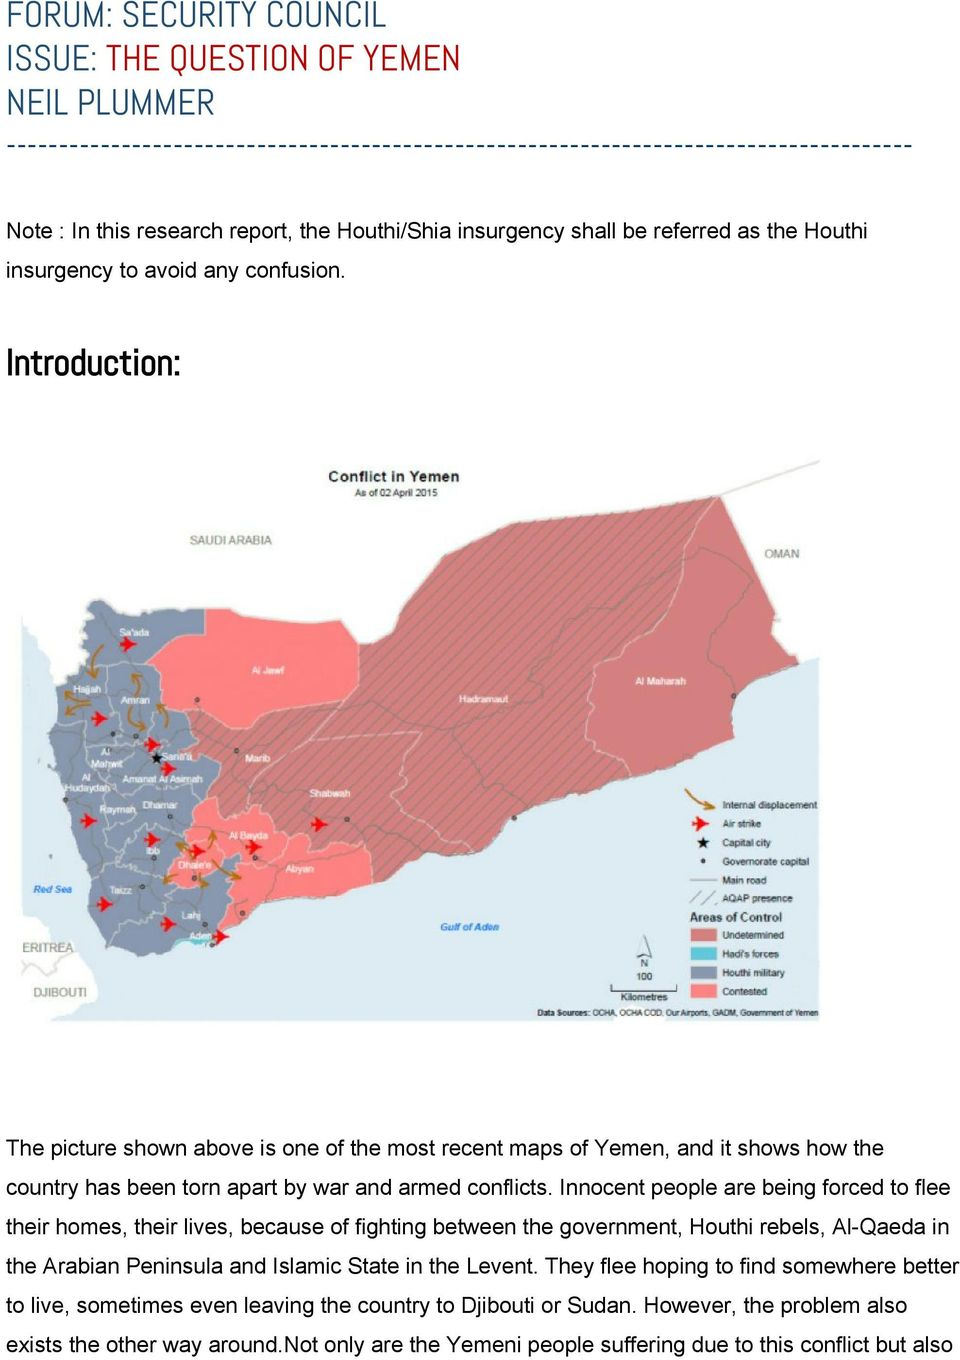 Introduction: The picture shown above is one of the most recent maps of Yemen, and it shows how the country has been torn apart by war and armed conflicts.